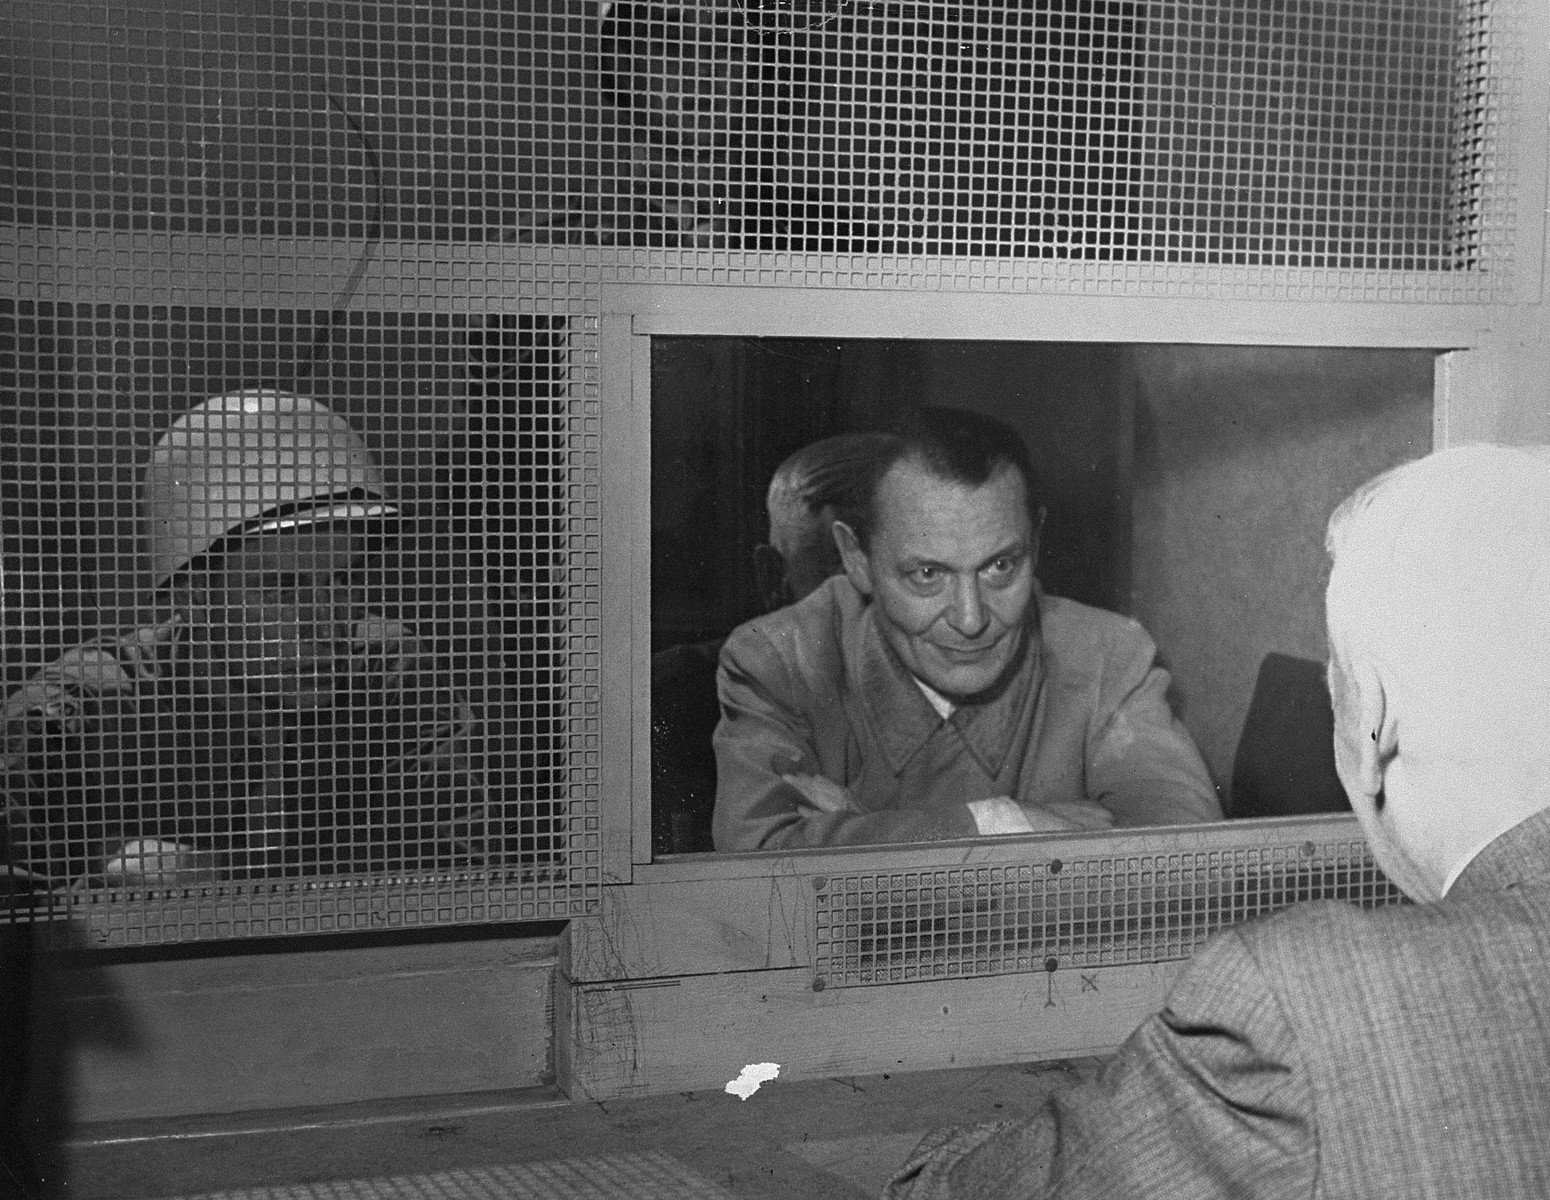 Defendant Hermann Goering consults with his lawyer, Dr. Otto Stahmer, in the Nuremberg prison at the International Military Tribunal trial of war criminals.  Also pictured is Theodore E. Glover.